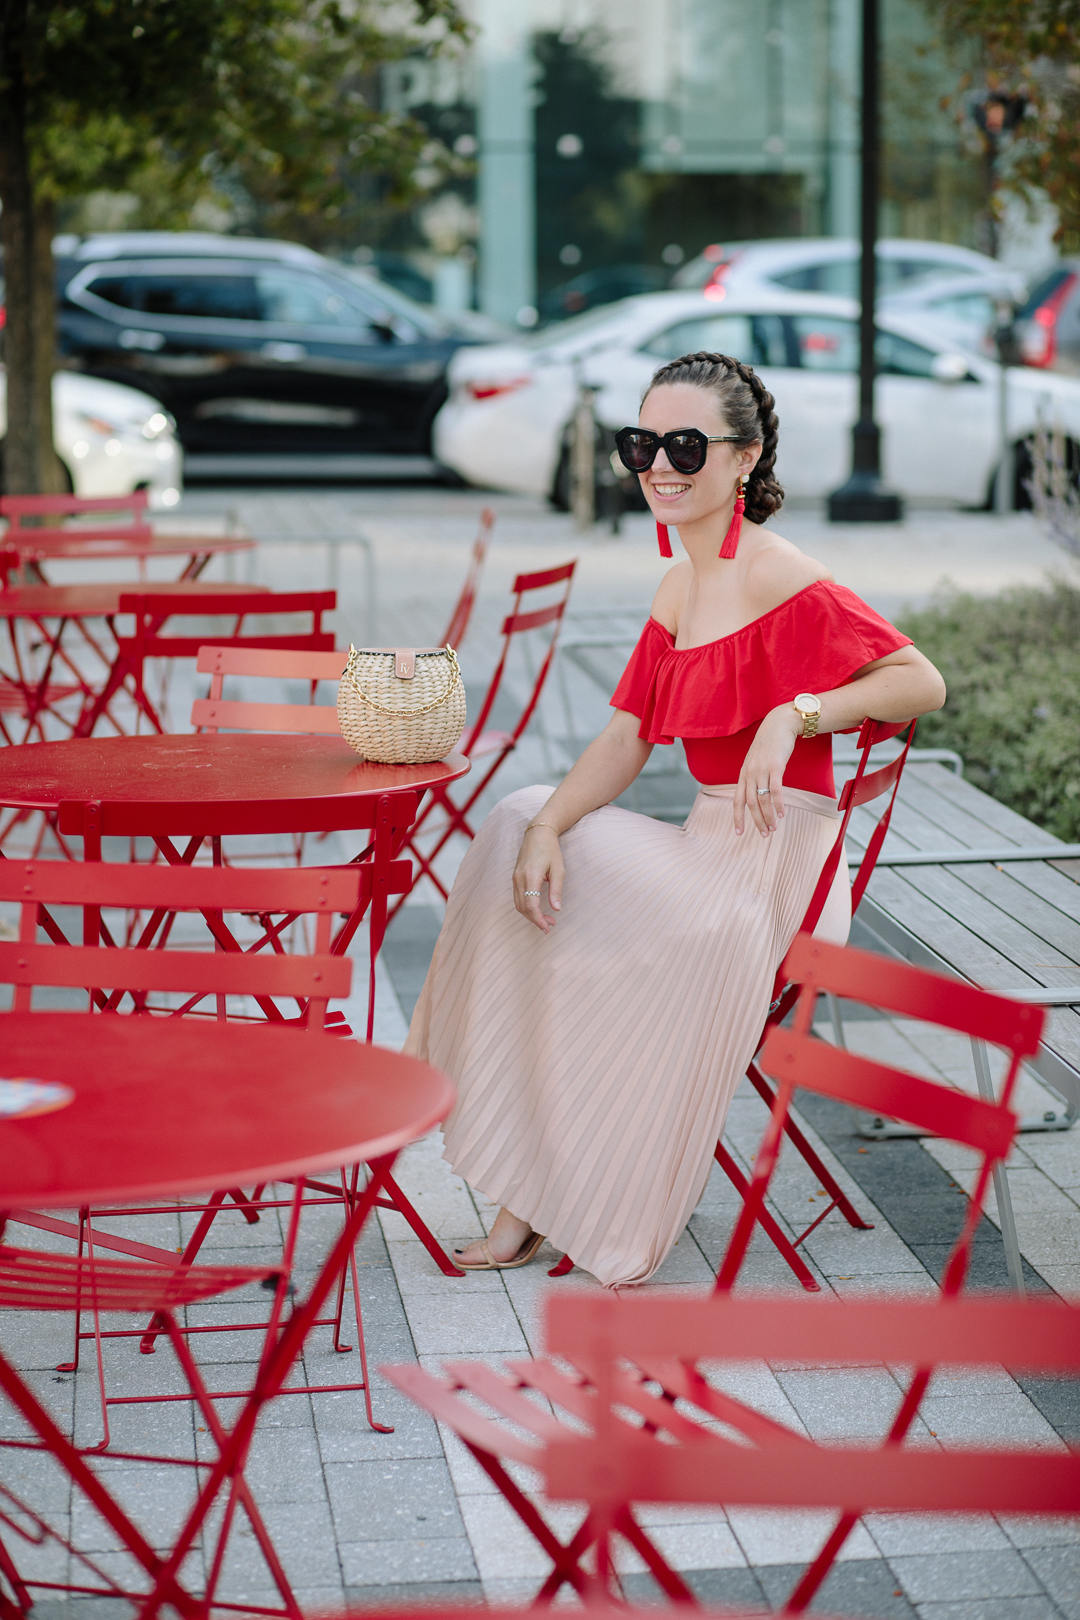 Wearing Annina skirt by Club Monaco